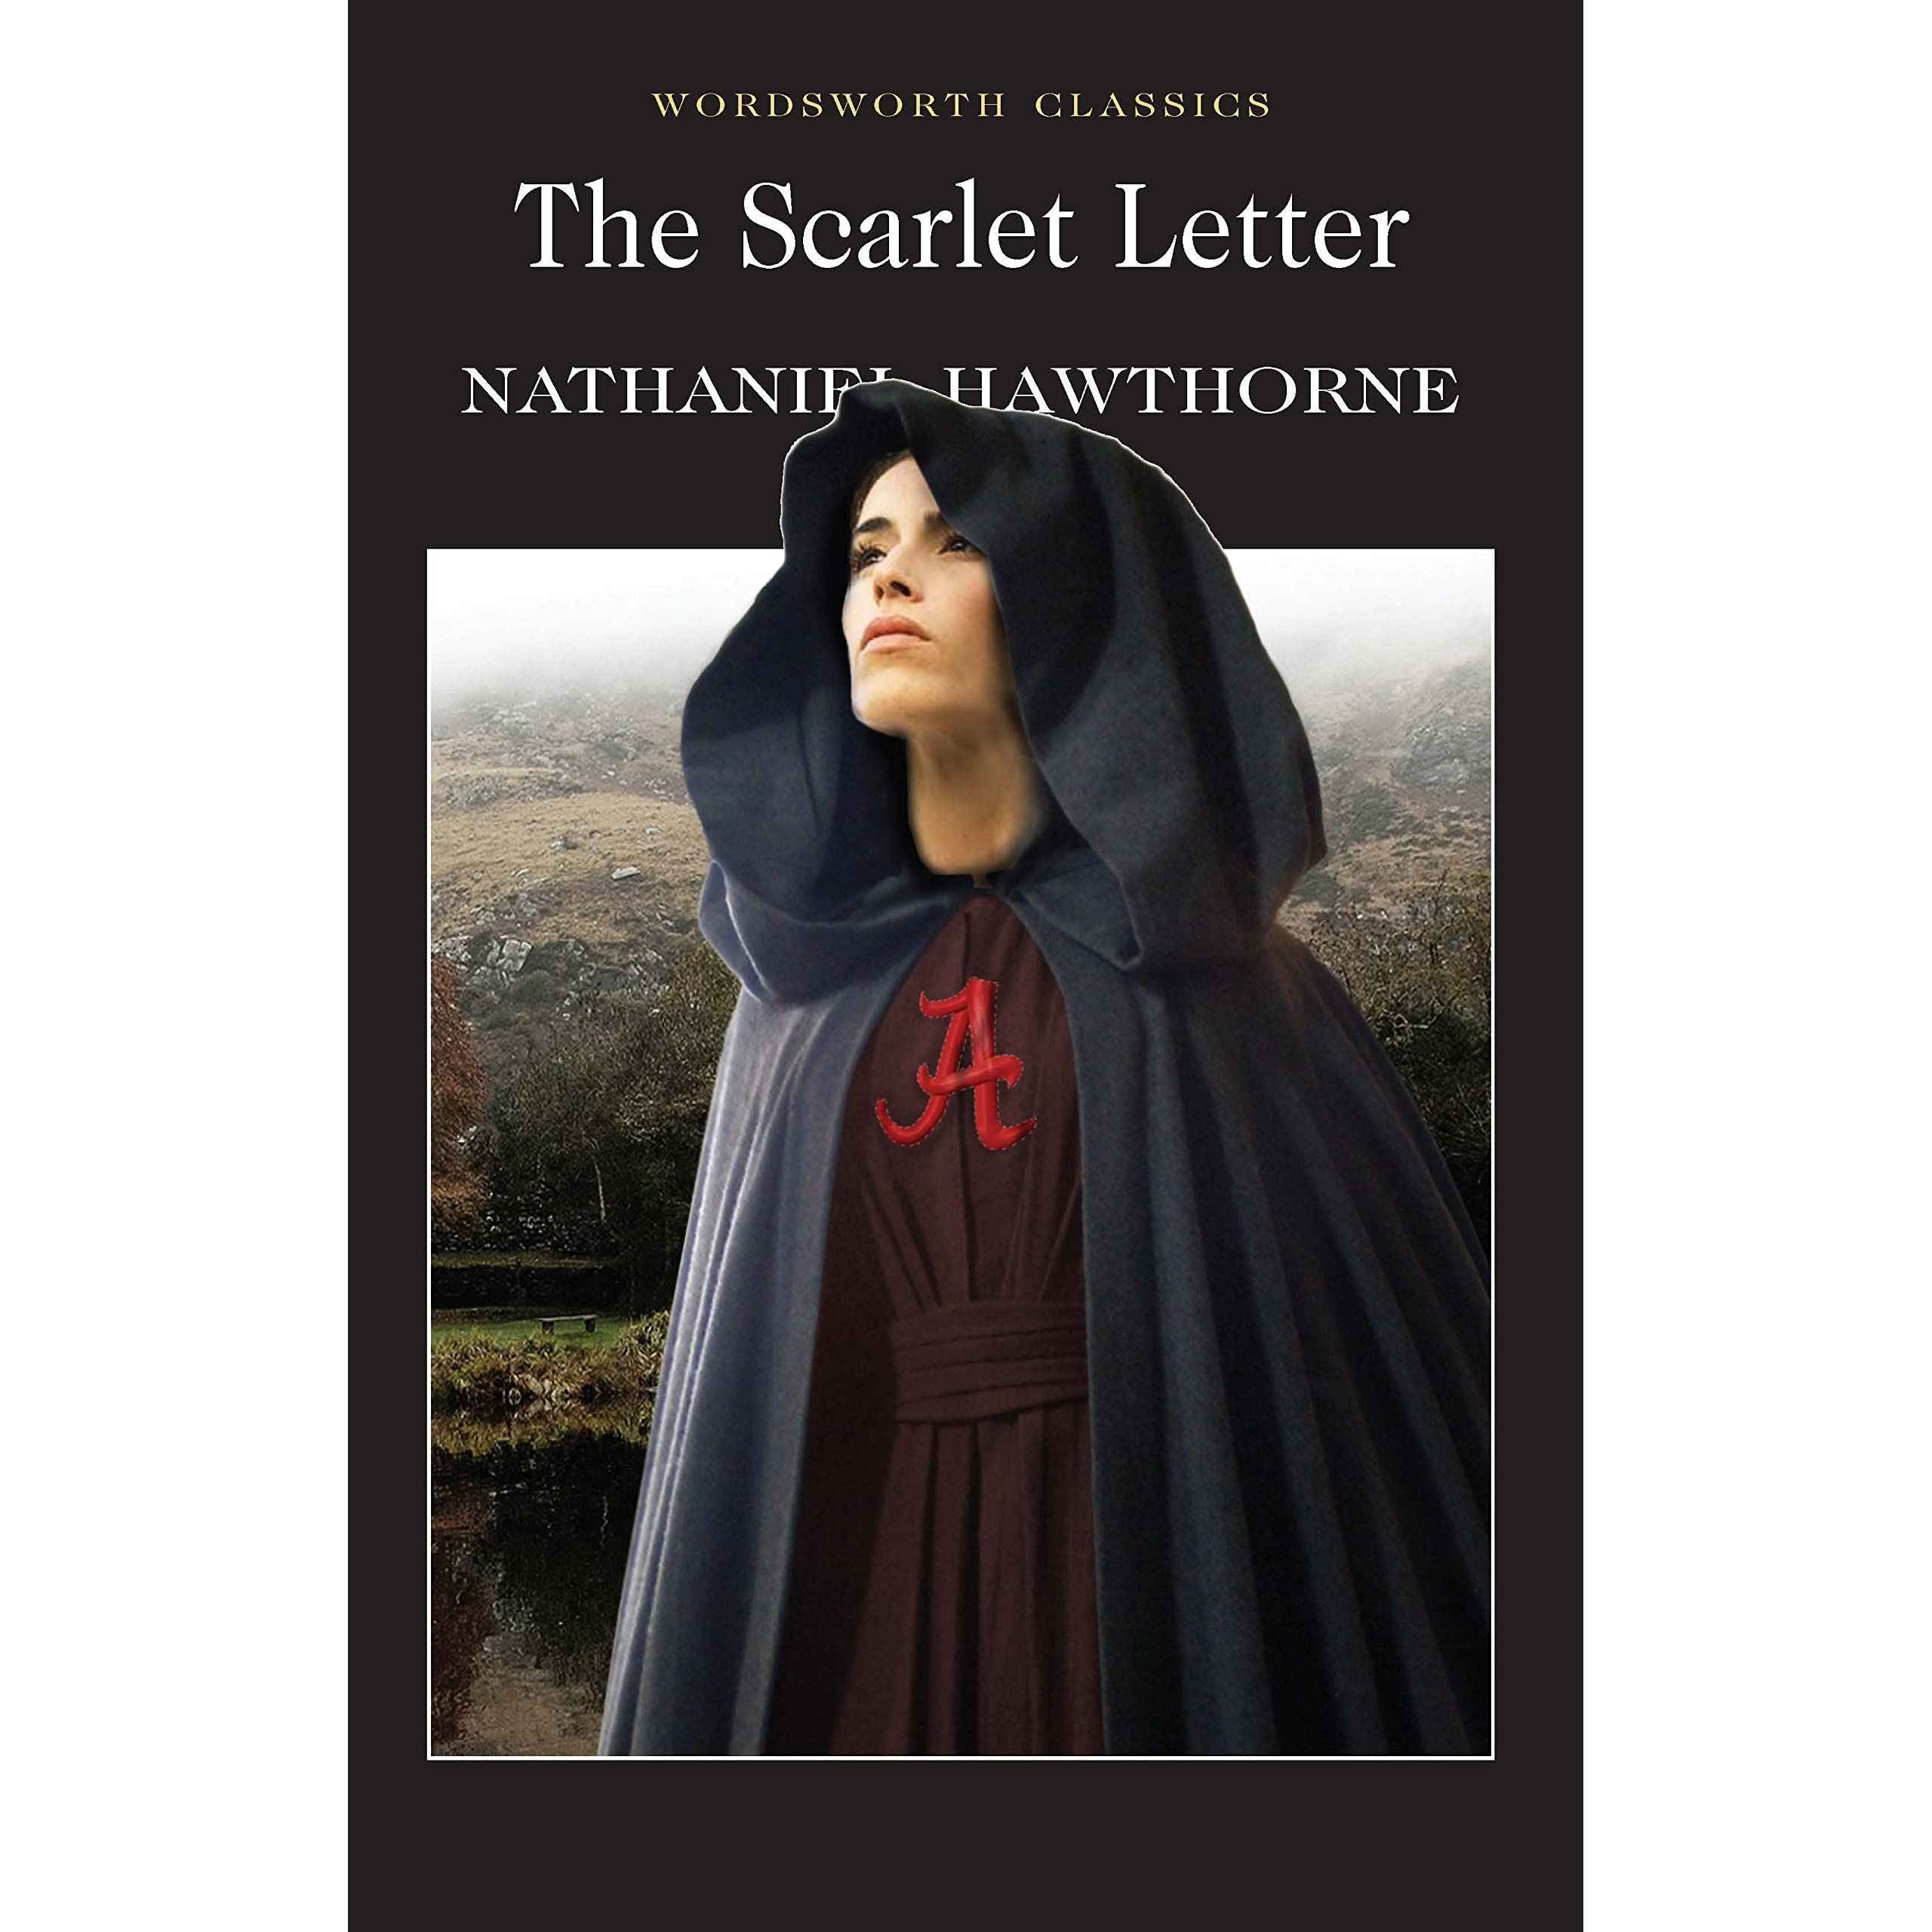 an analysis of hawthornes the scarlet letter as one of the most well remembered romantic novels in h Its range is so wide, it calls for so many and so different capacities in one attempting to discuss it such analysis is interesting to make.